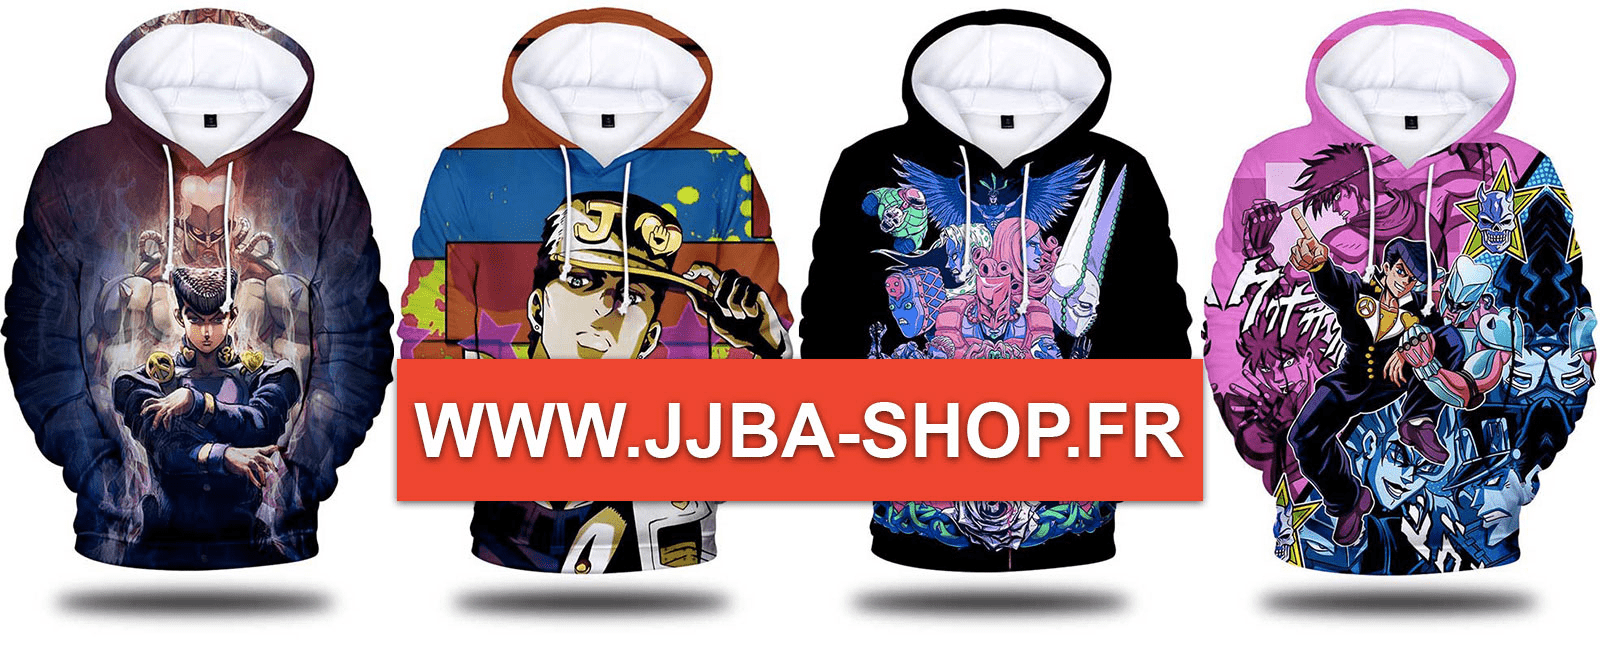 boutique jjba shop